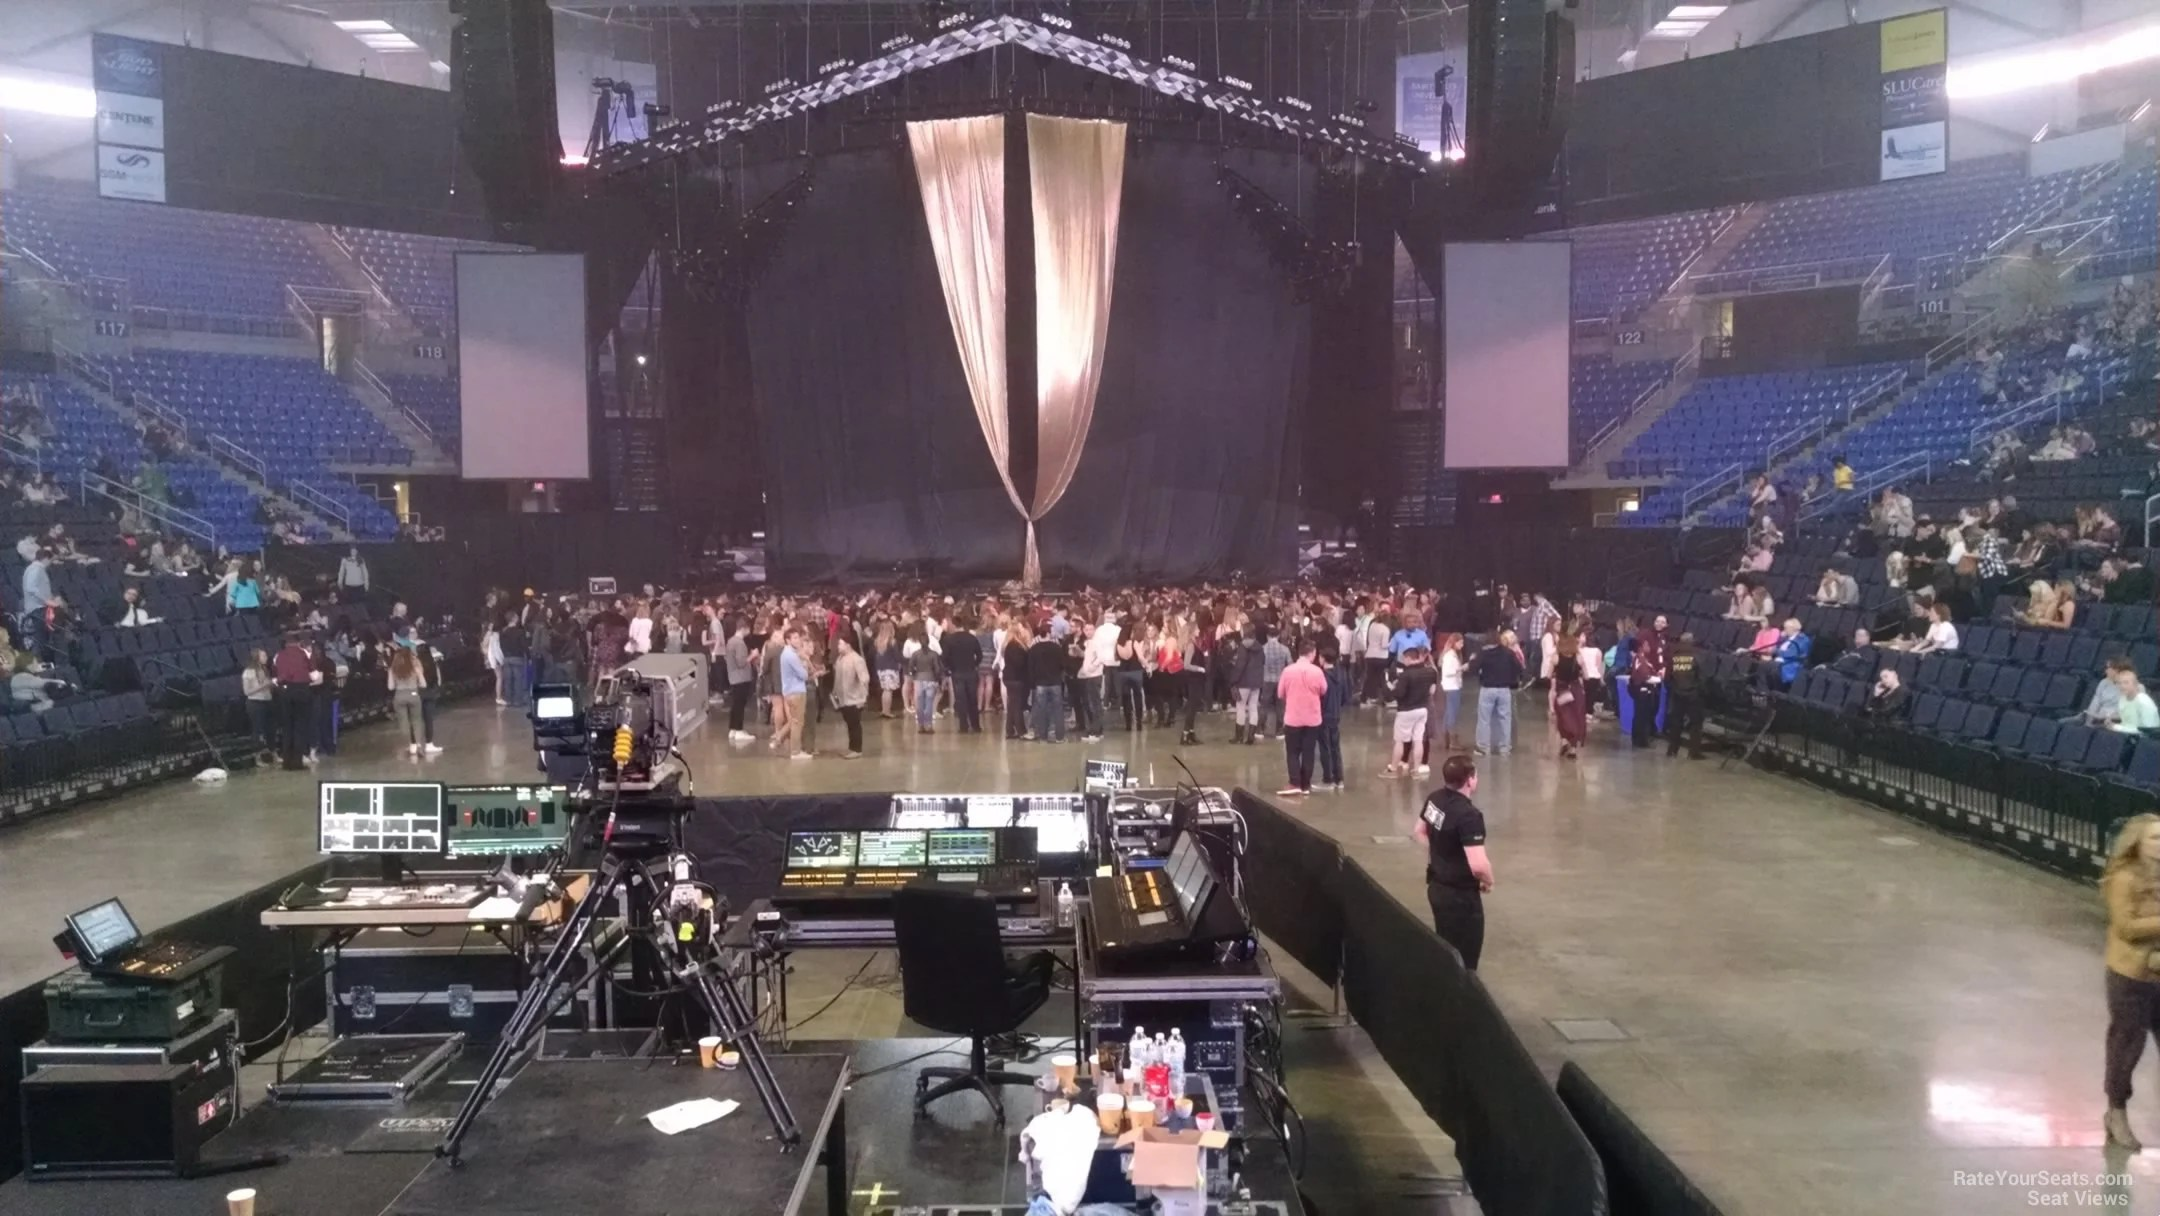 arena stage diagram passtime gps wiring chaifetz concert seating guide rateyourseats